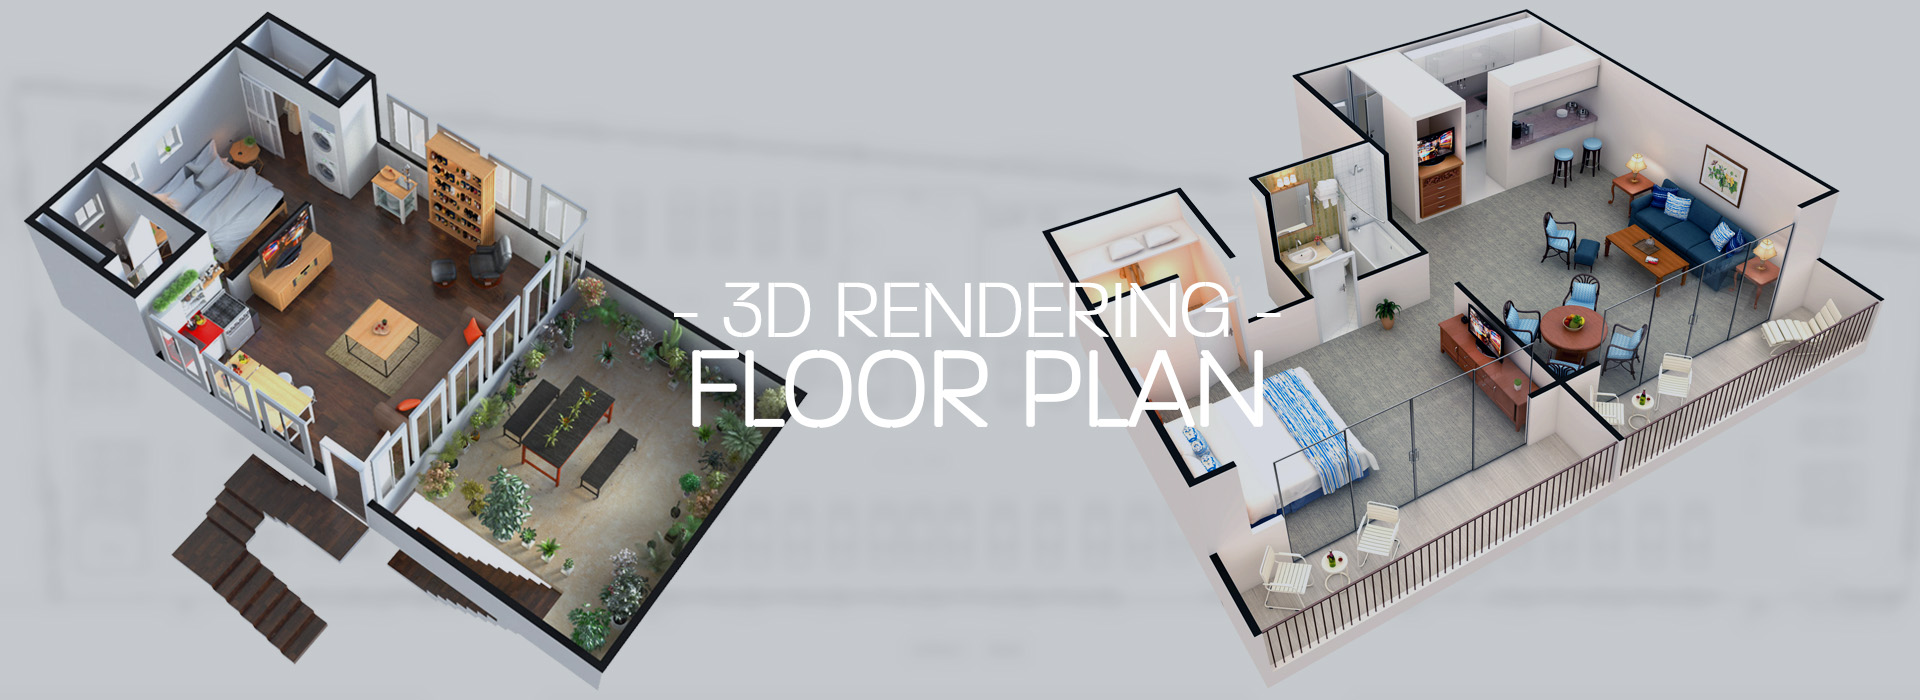 3D Rendering Floor Plan